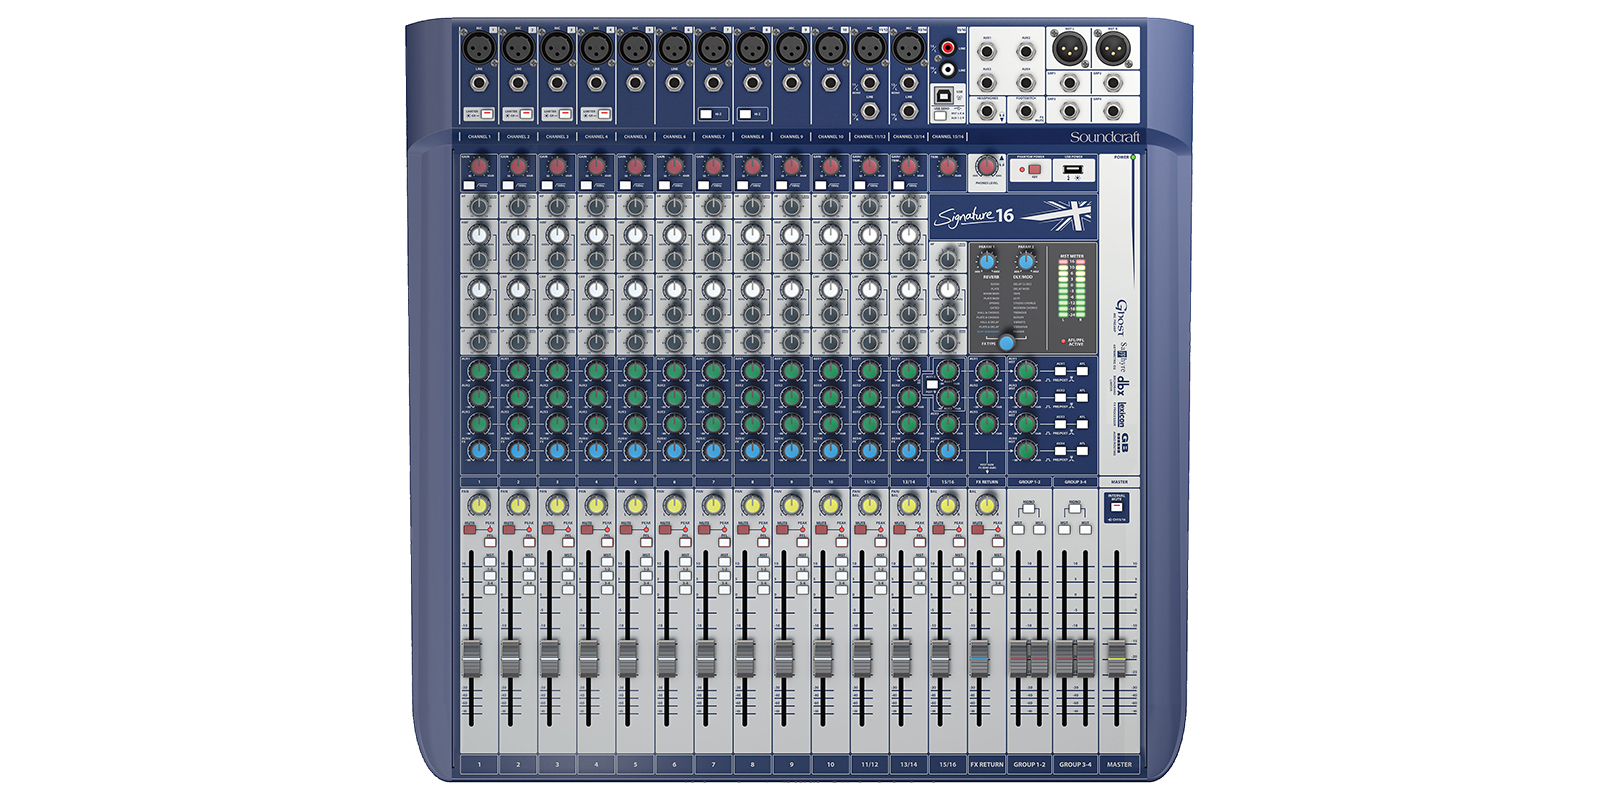 Signature 16 | Soundcraft - Professional Audio Mixers